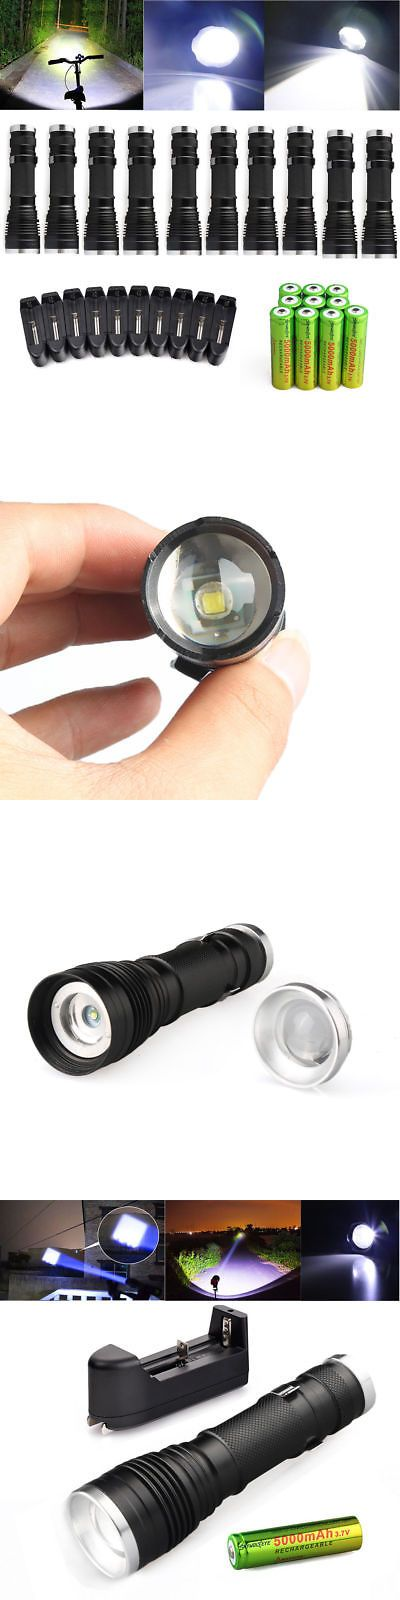 LED Light Key Chains: 10Pc Ultrafire Military Camping T615000lm Led Flashlight 18650 Police Torch Lamp -> BUY IT NOW ONLY: $42.99 on eBay!